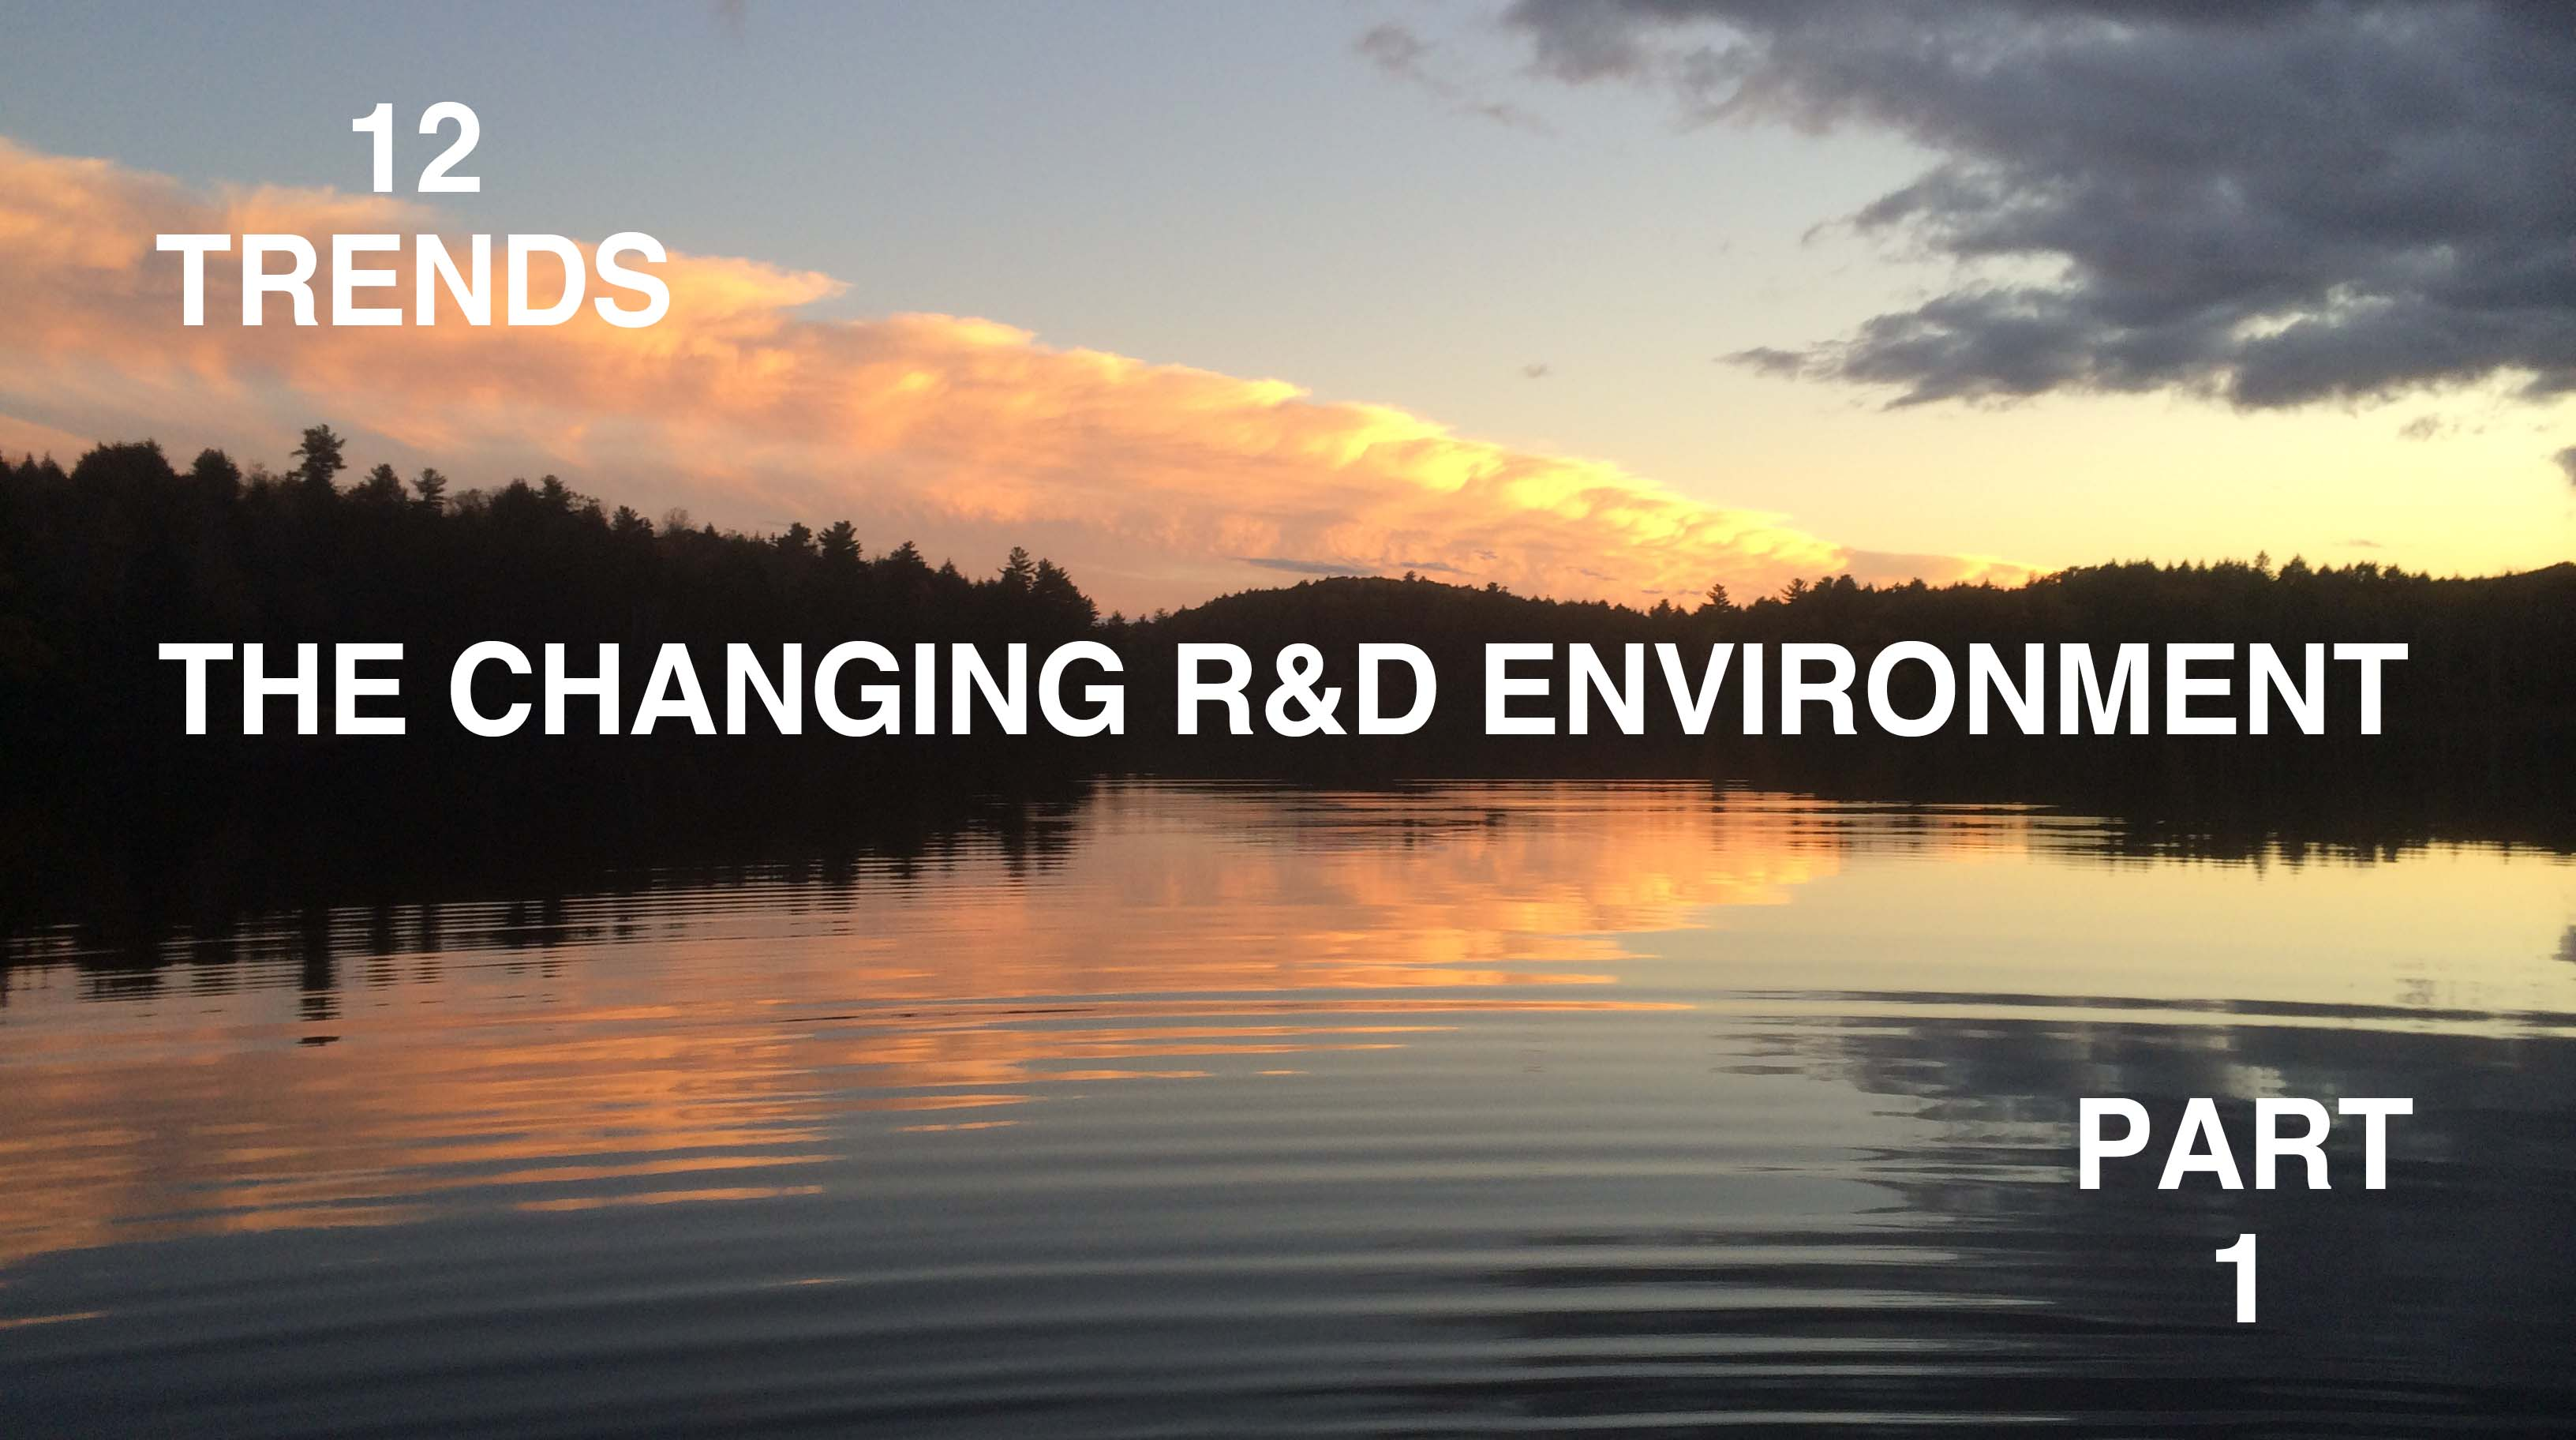 Top 12 Trends in the Science of Managing R&D and Product Development-Part 1